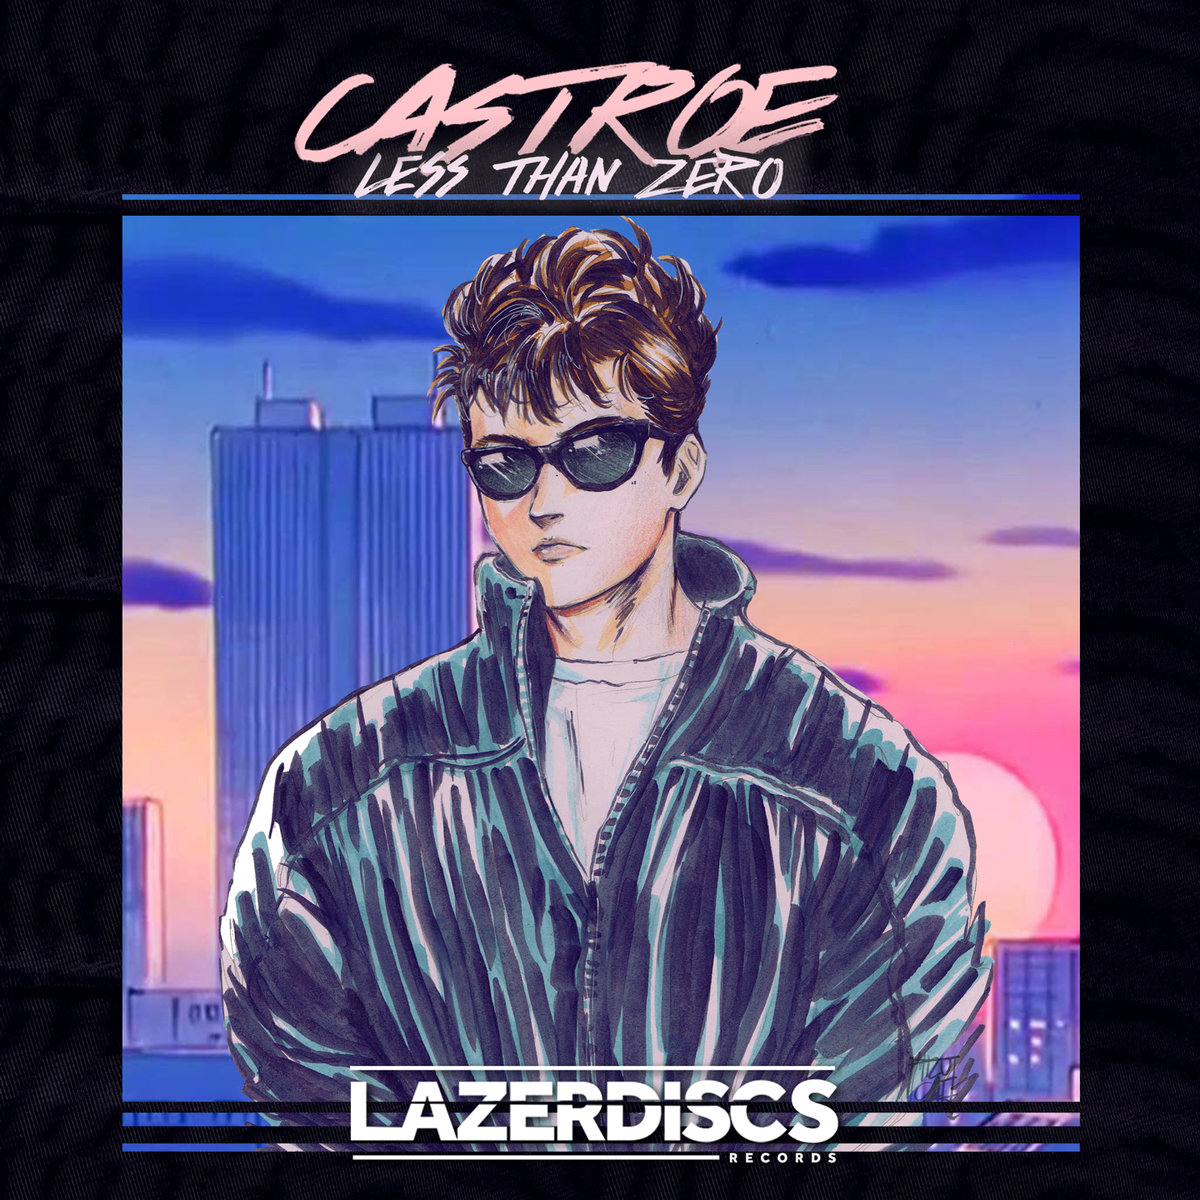 CastroeLess Than Zero-Castroe-Art